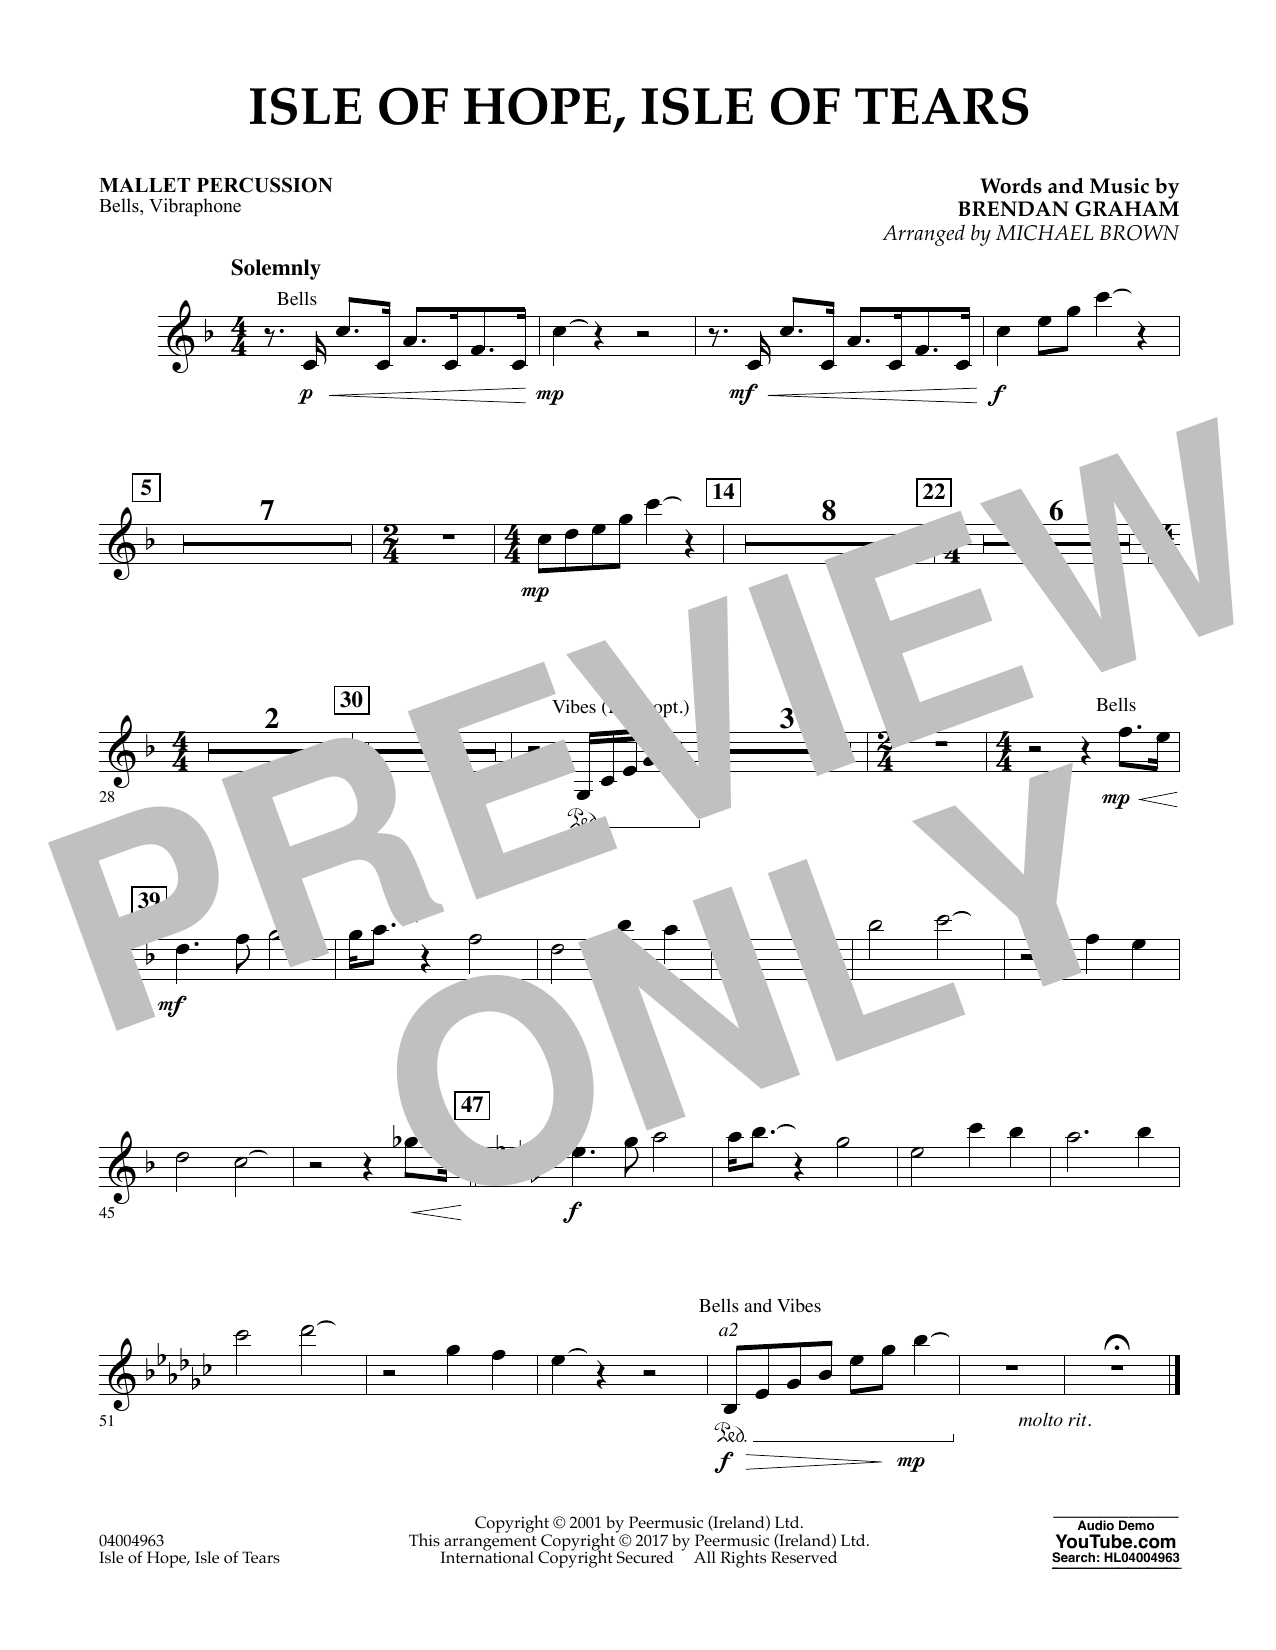 Isle of Hope, Isle of Tears - Mallet Percussion Sheet Music